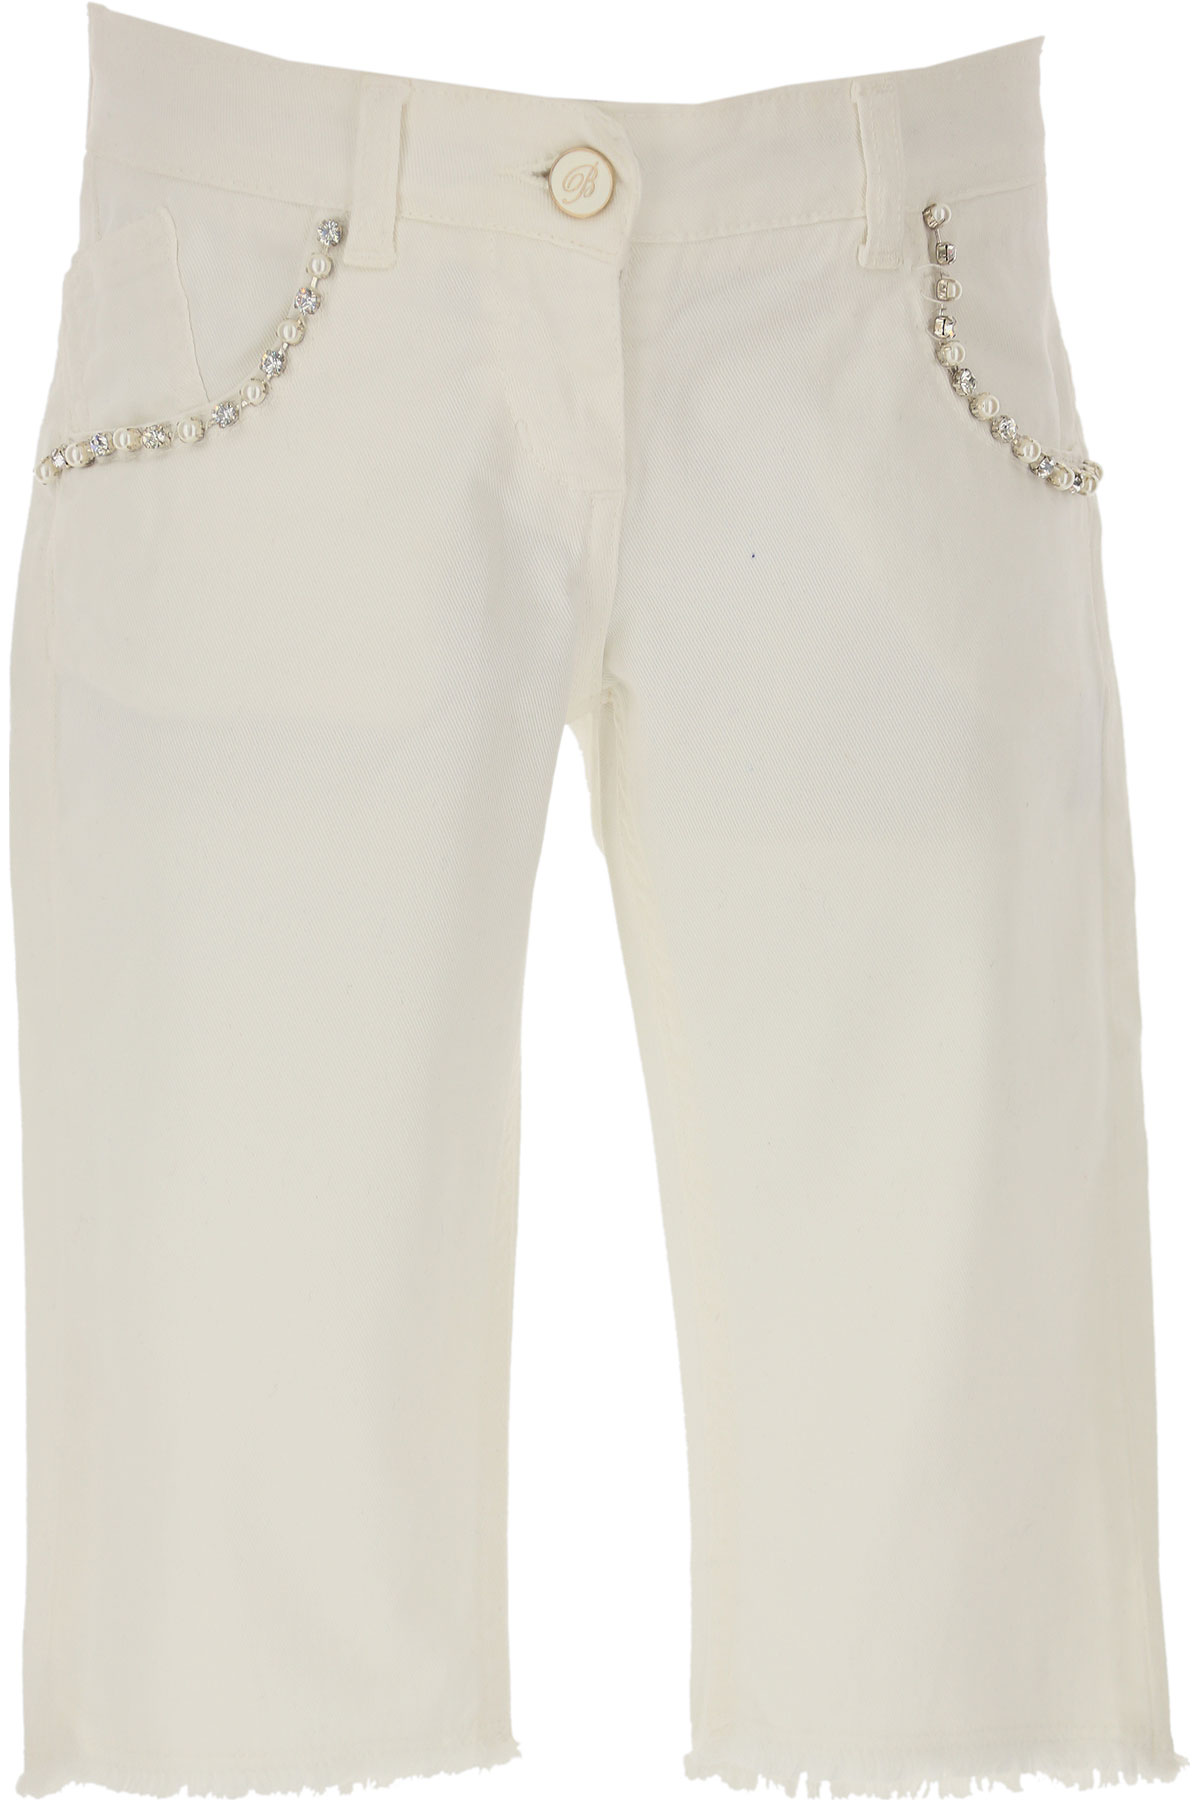 Blumarine Kids Shorts for Girls On Sale in Outlet, White, Cotton, 2019, 10Y 12Y